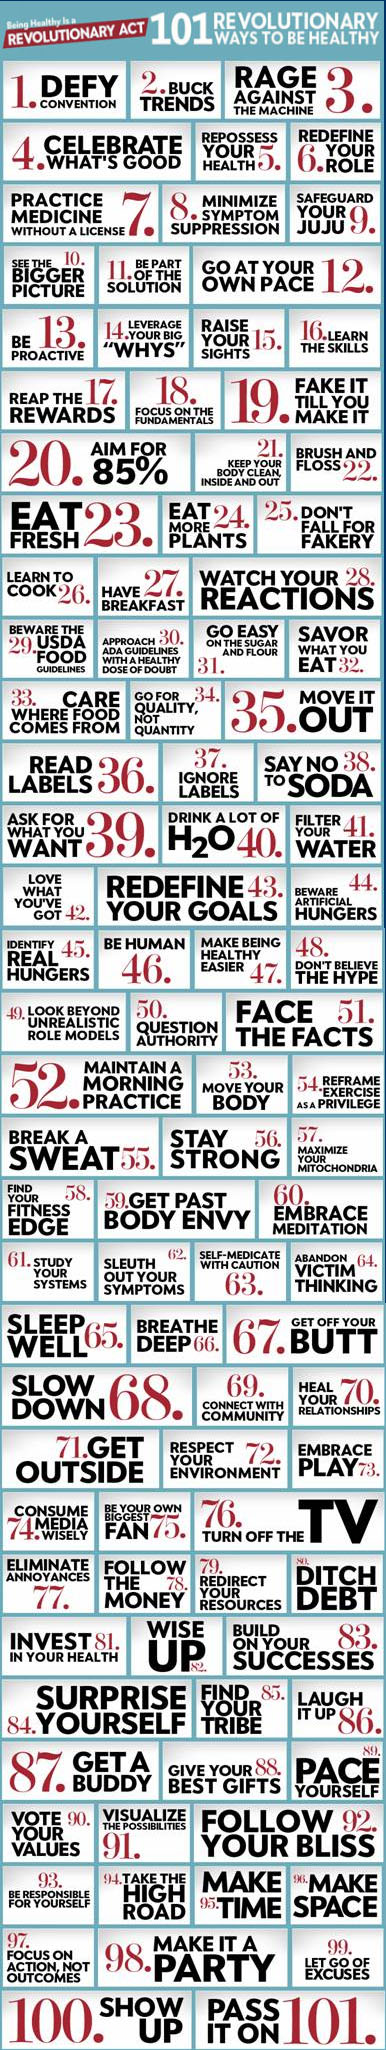 101 Revolutionary Ways to Be Healthy